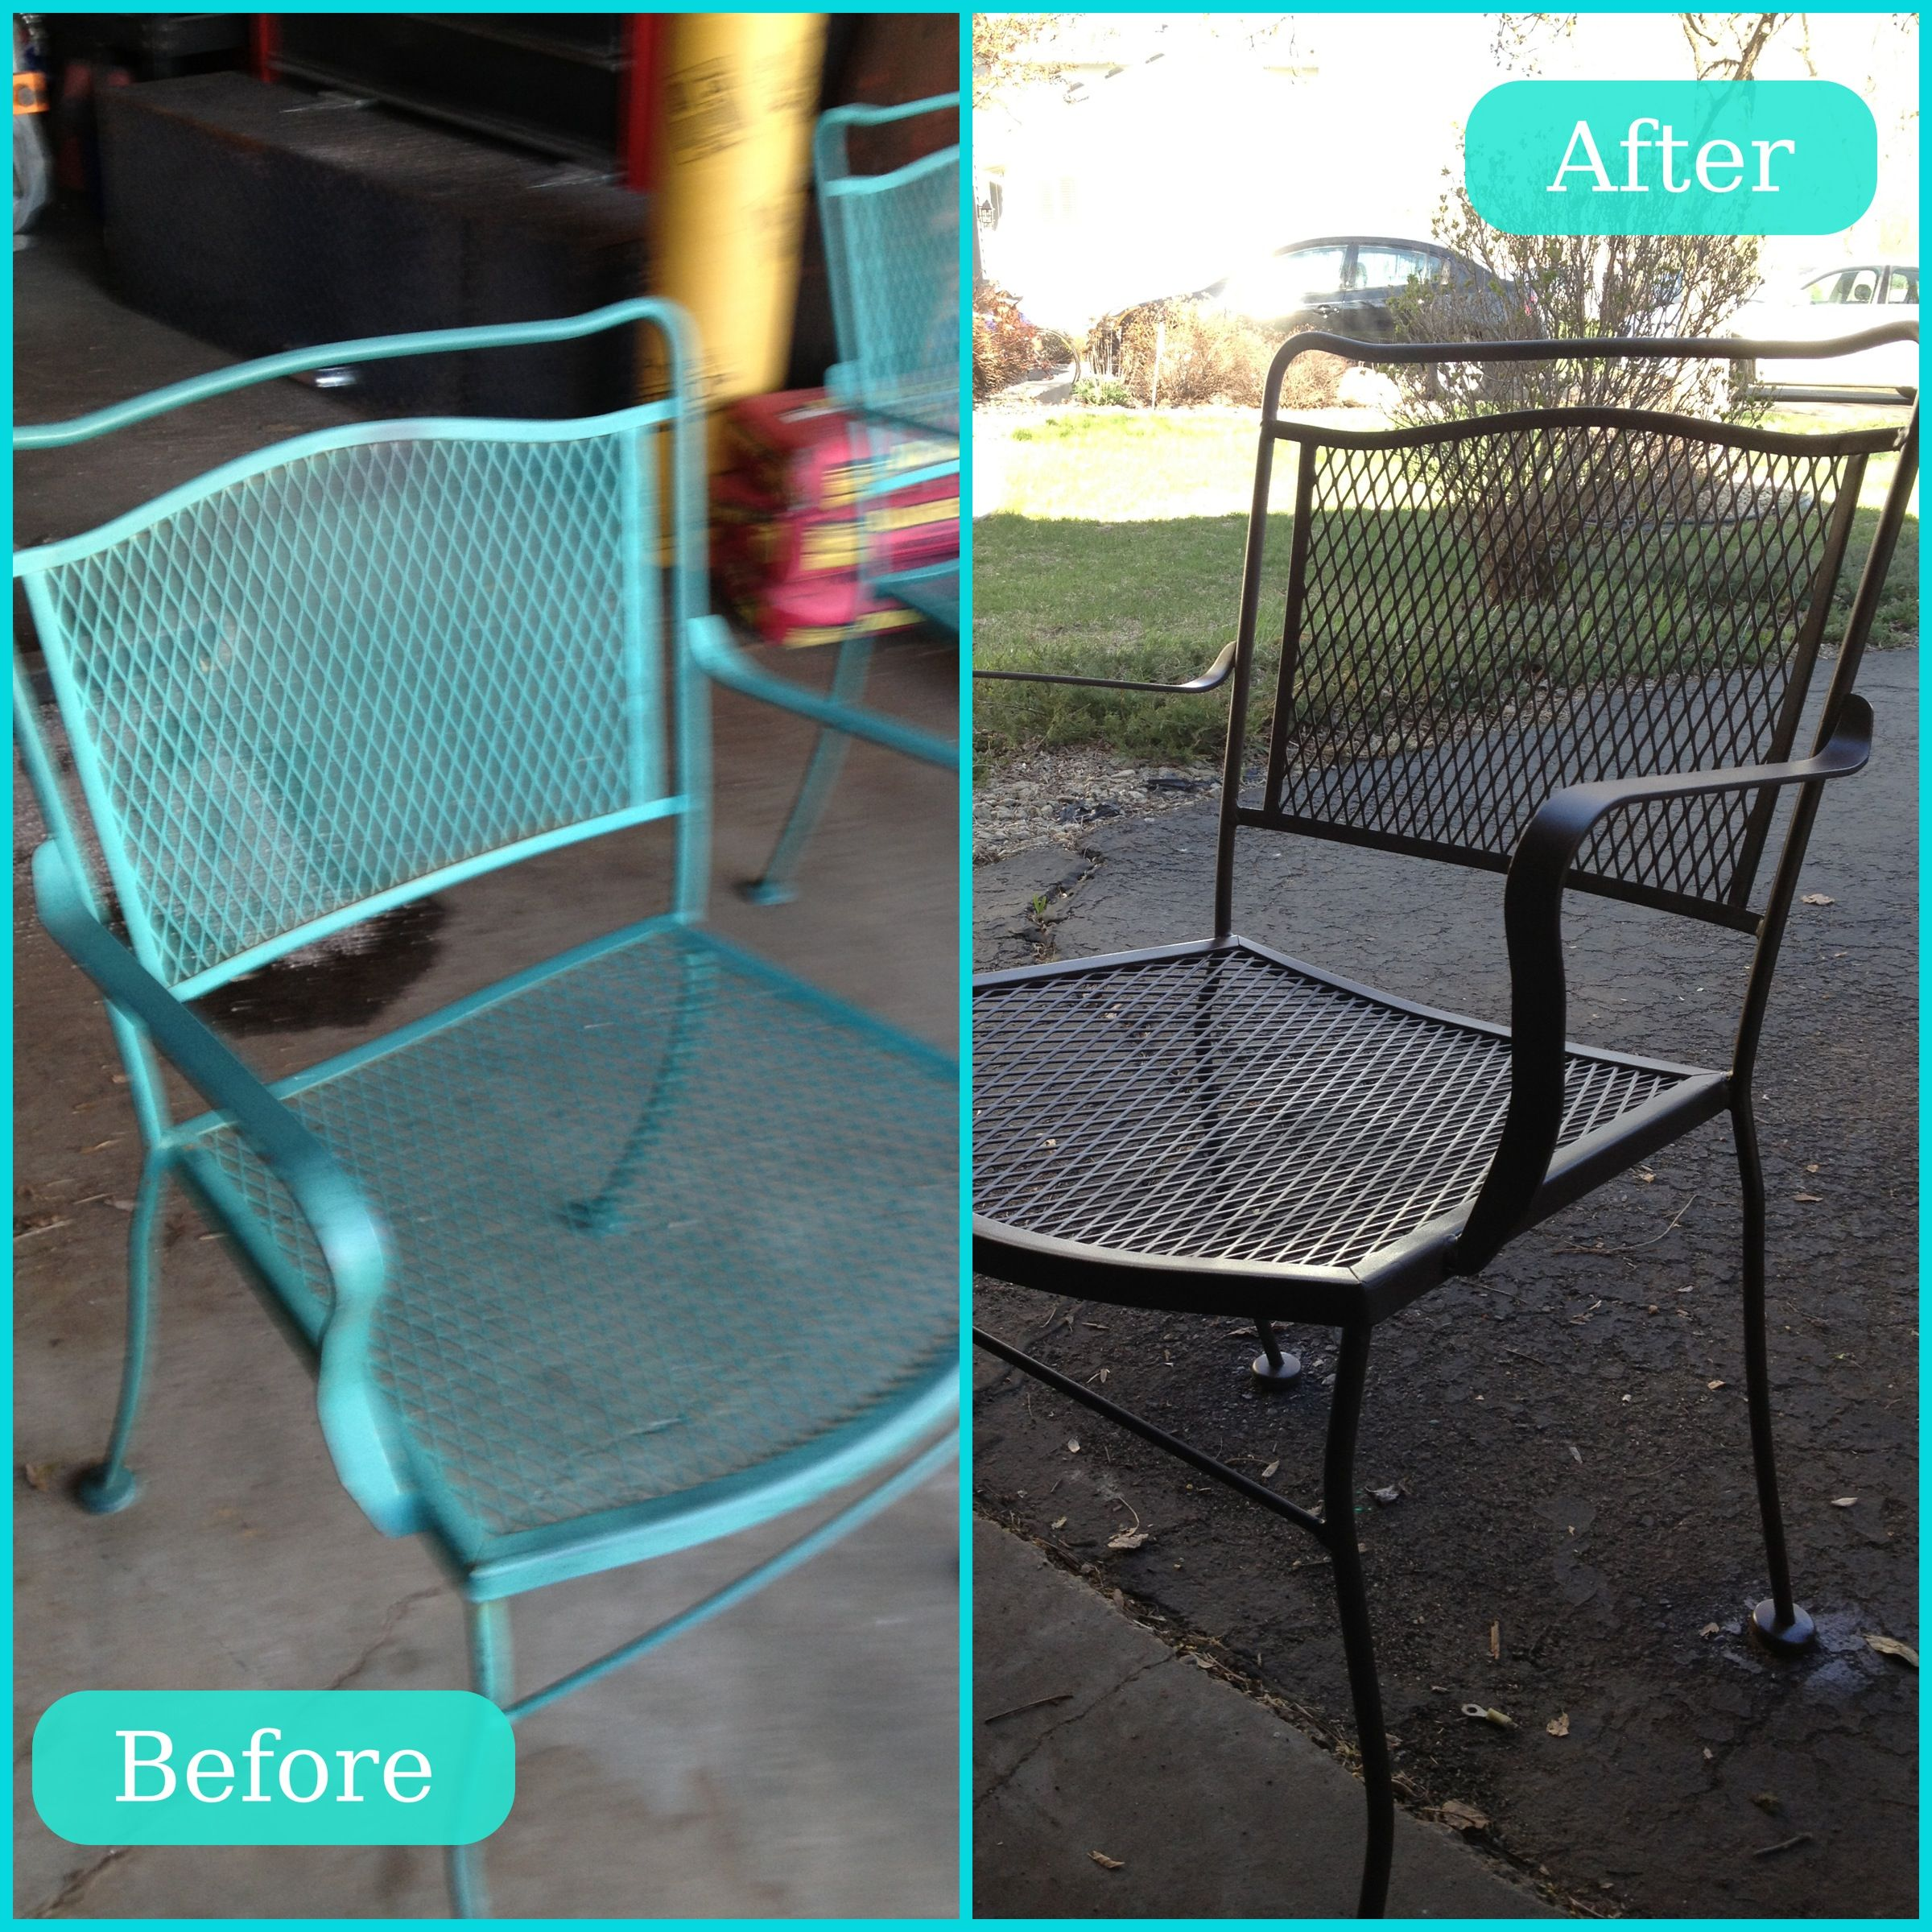 Scarp Off Rust Lightly Sand And Spray Paint Patio Furniture Redo Just Need Outdoor Pillows